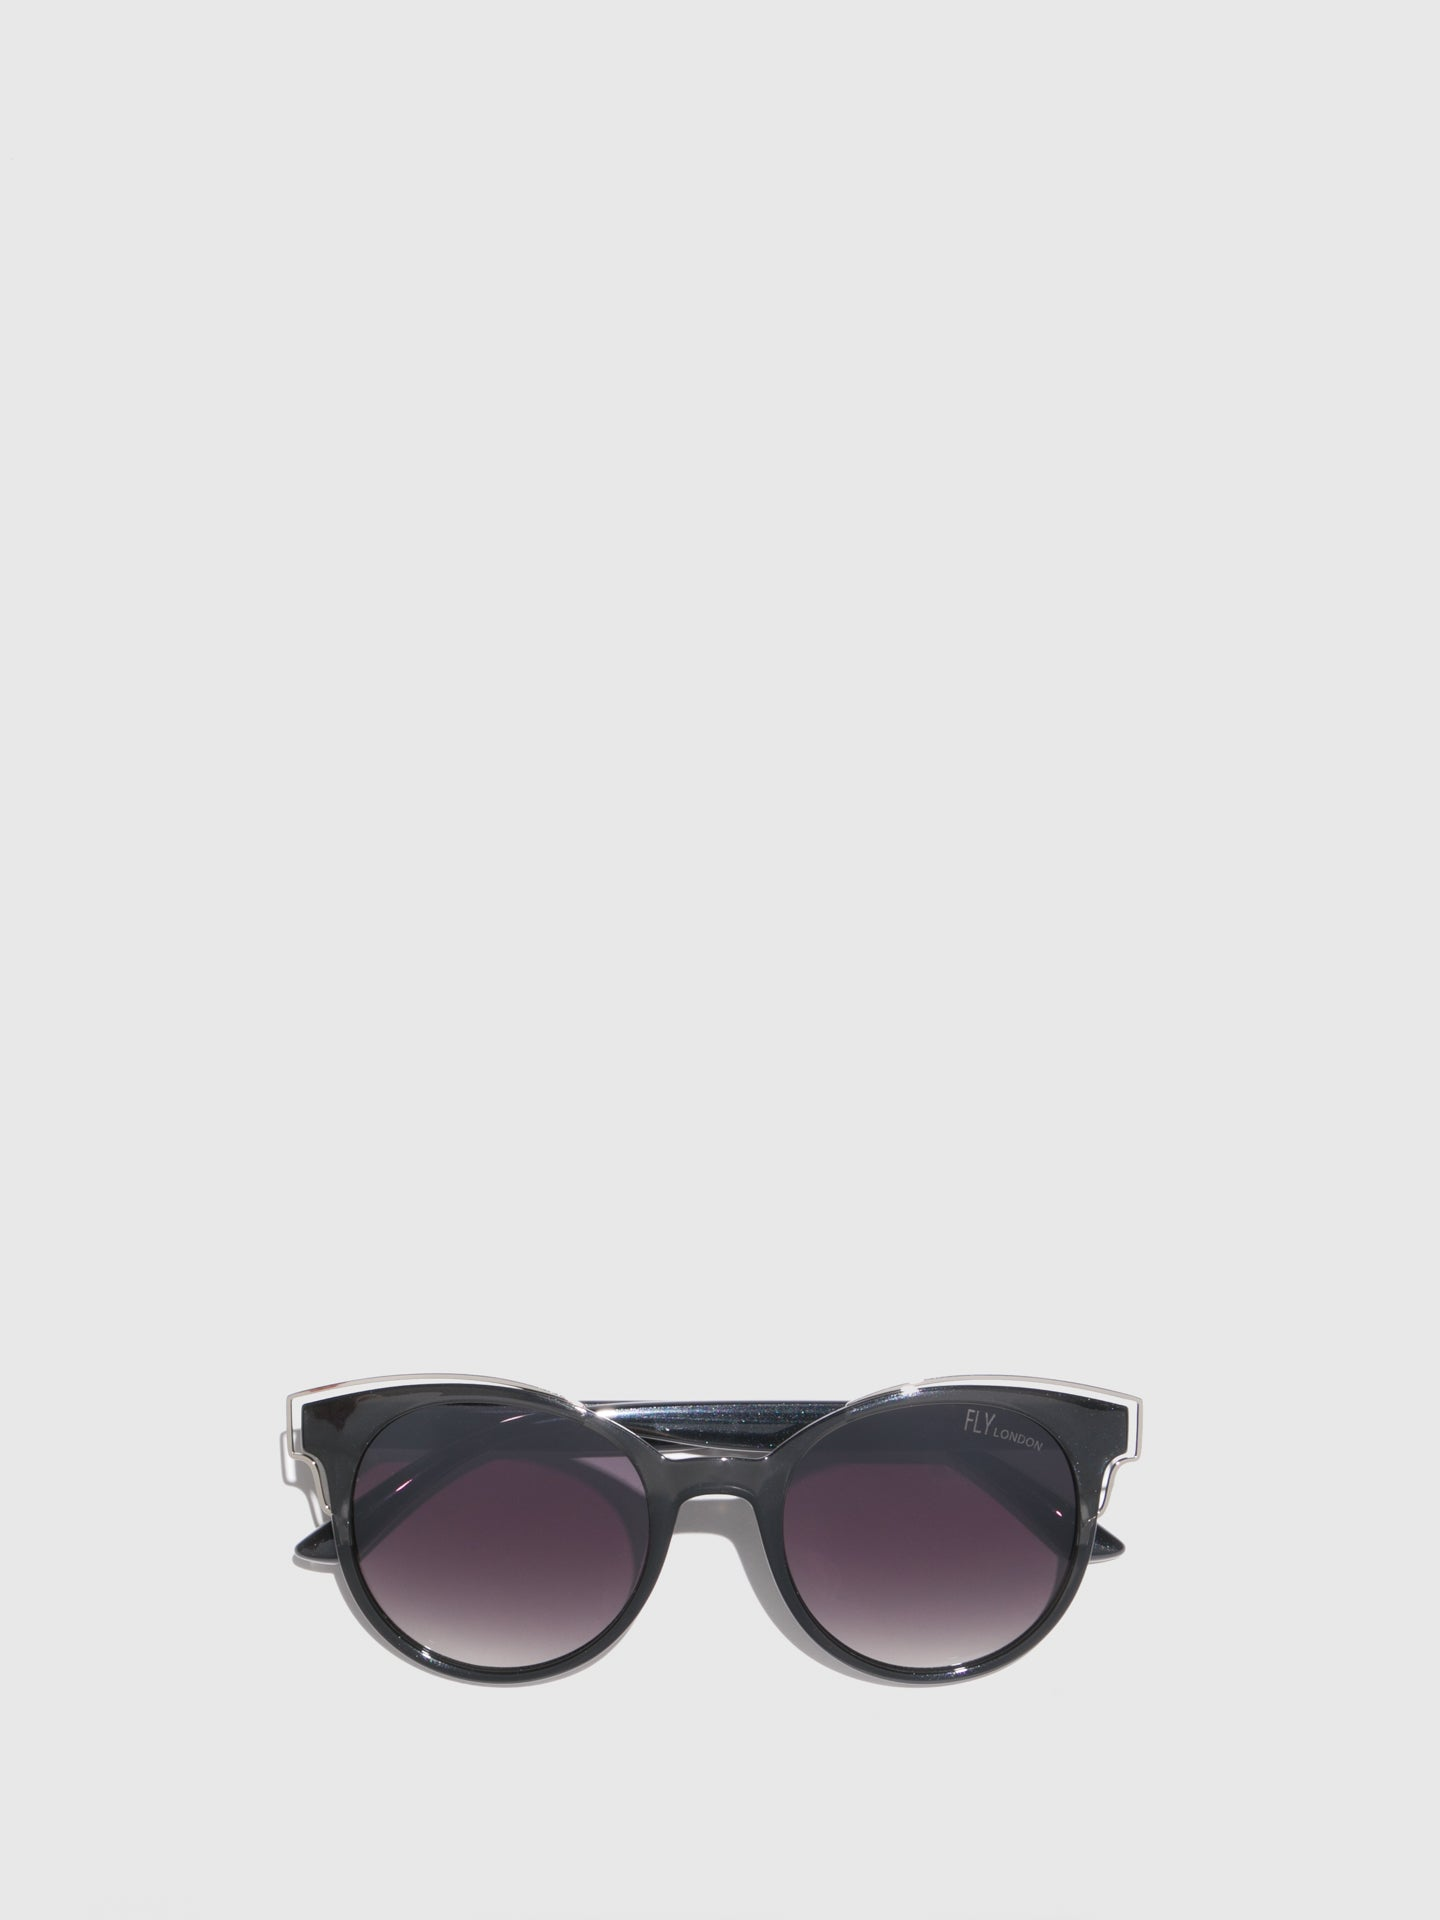 Fly London Gray Clubmaster Style Sunglasses